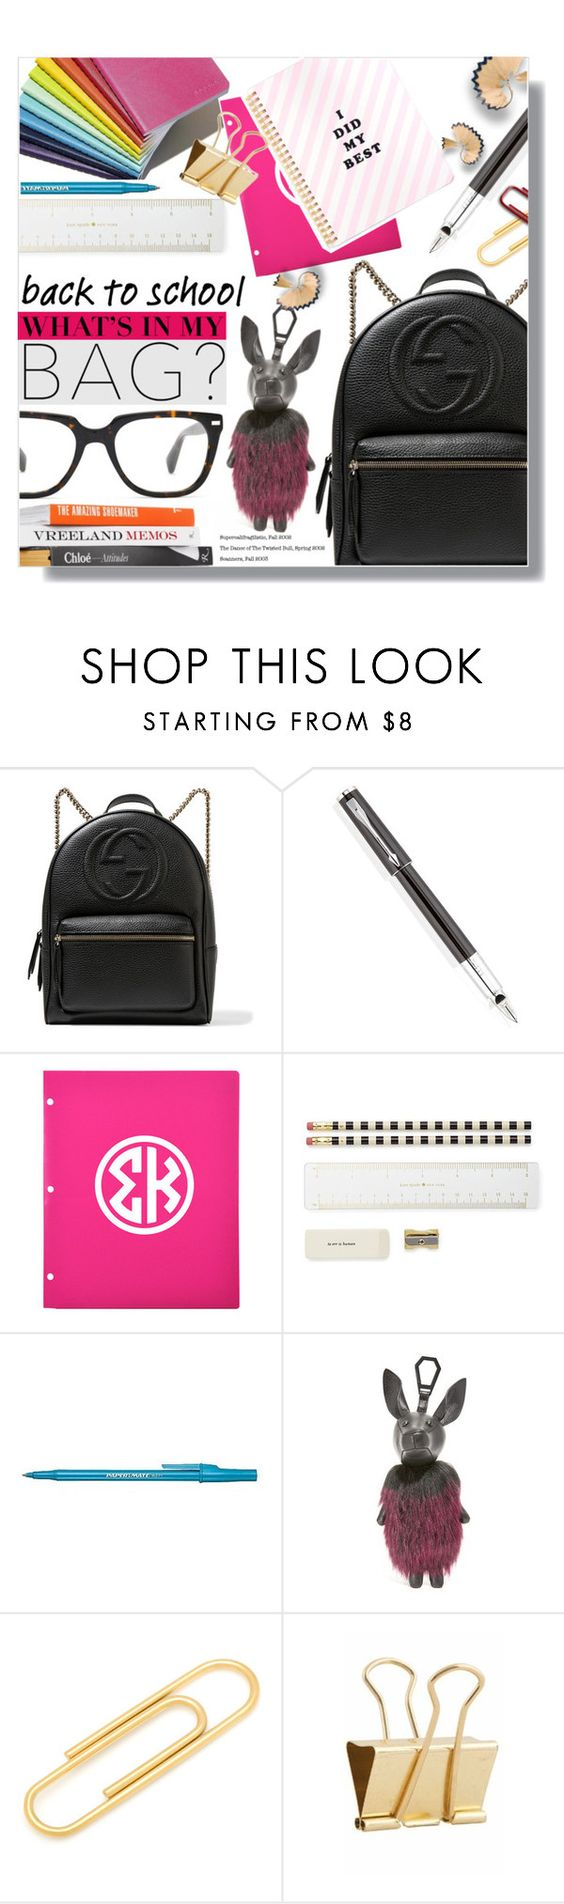 """""""Back To School: What's In My Bag?"""" by chocolate-addicted-angel ❤ liked on Polyvore featuring Gucci, Parker, Kate Spade, Paper Mate, Kendall + Kylie, Ox & Bull Trading Co., Holly's House, BackToSchool, backpack and 2016"""